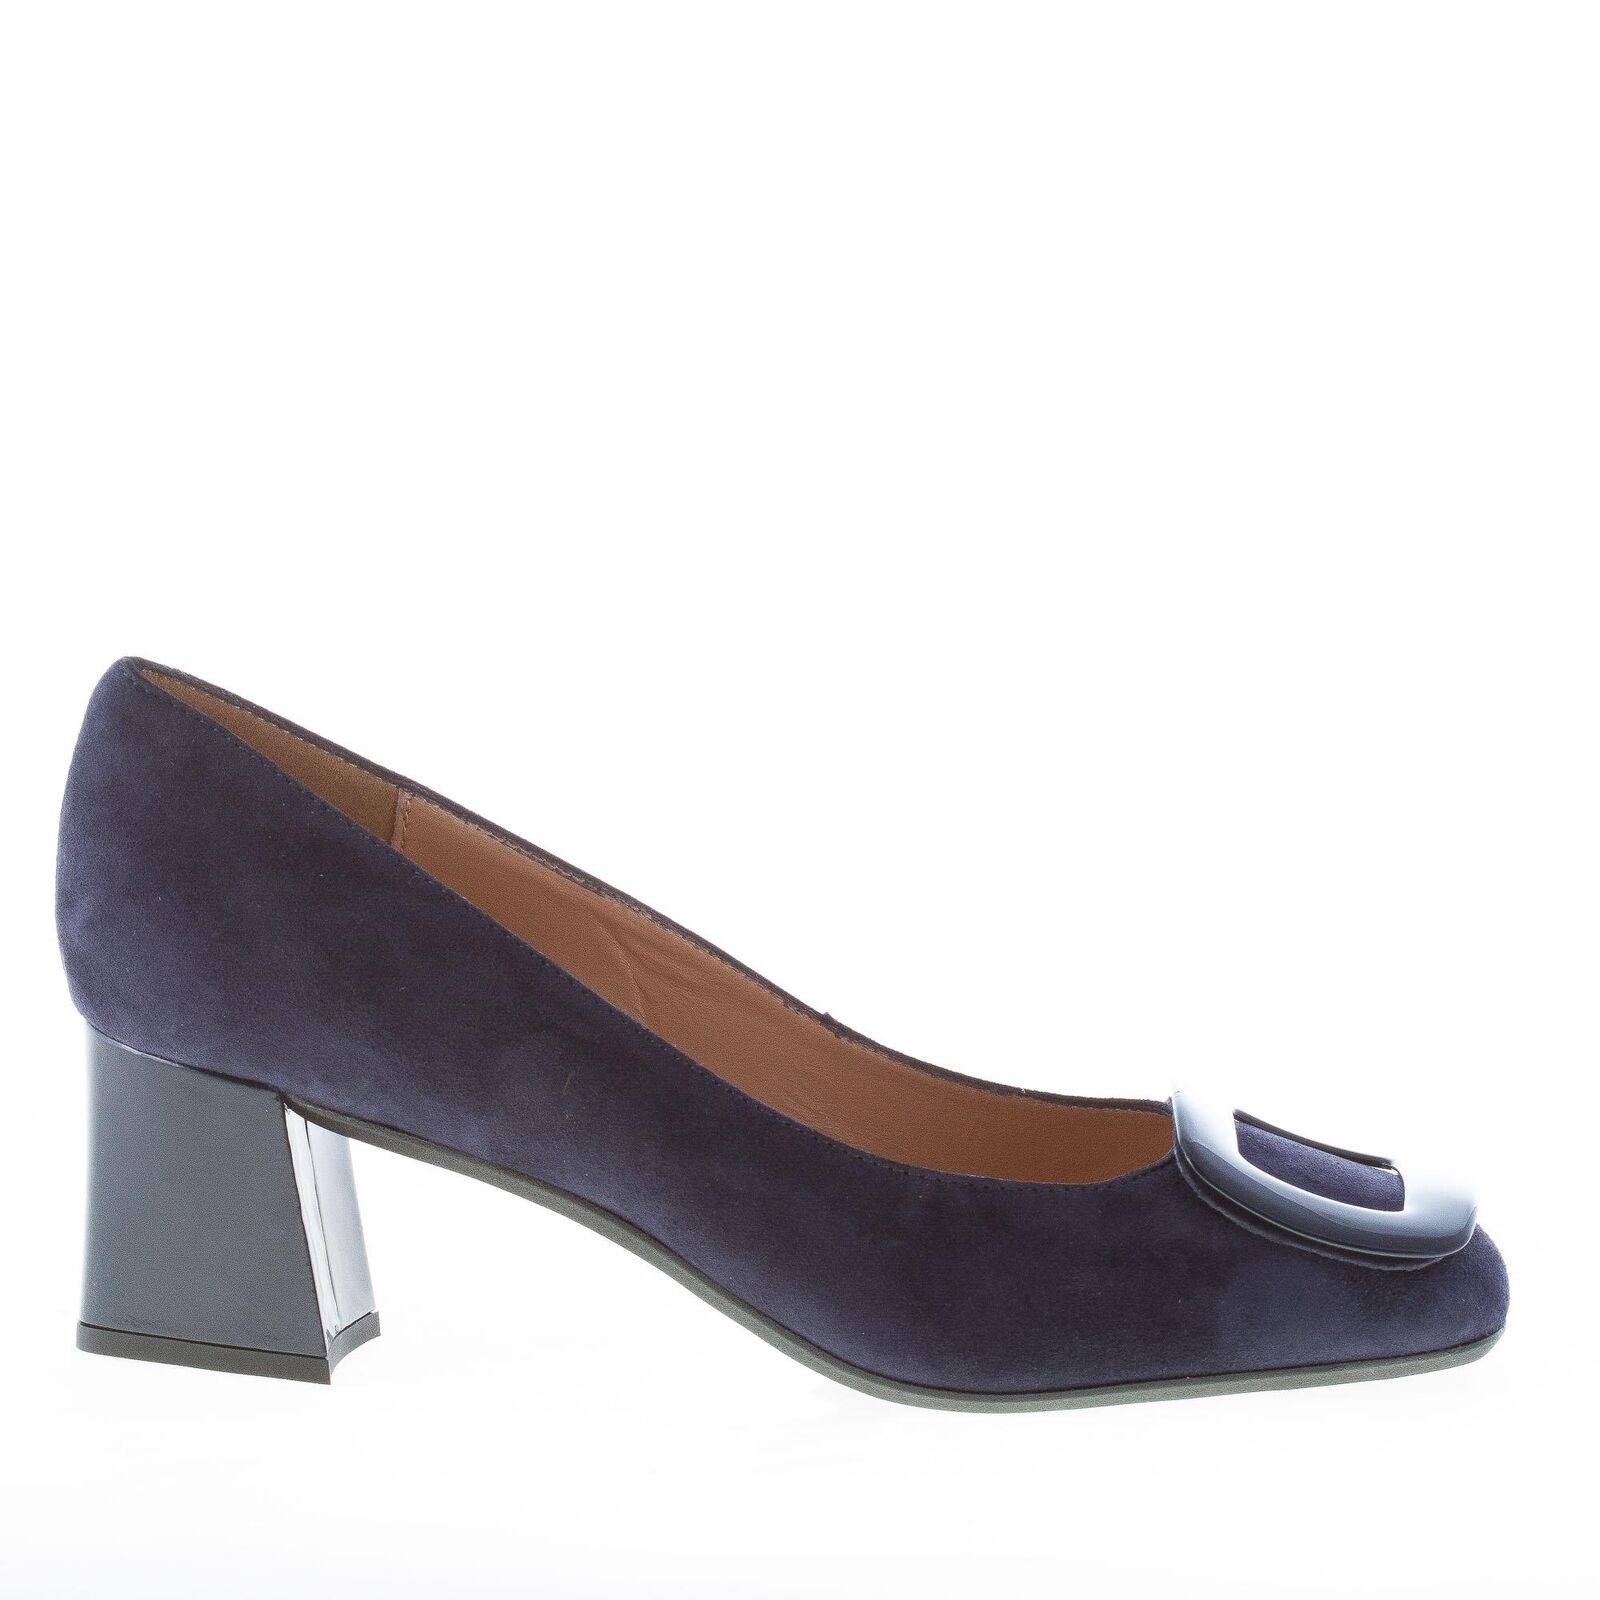 IL IL IL BORGO FIRENZE women shoes maded in Italy blau suede pump with navy buckle 0a8c0f